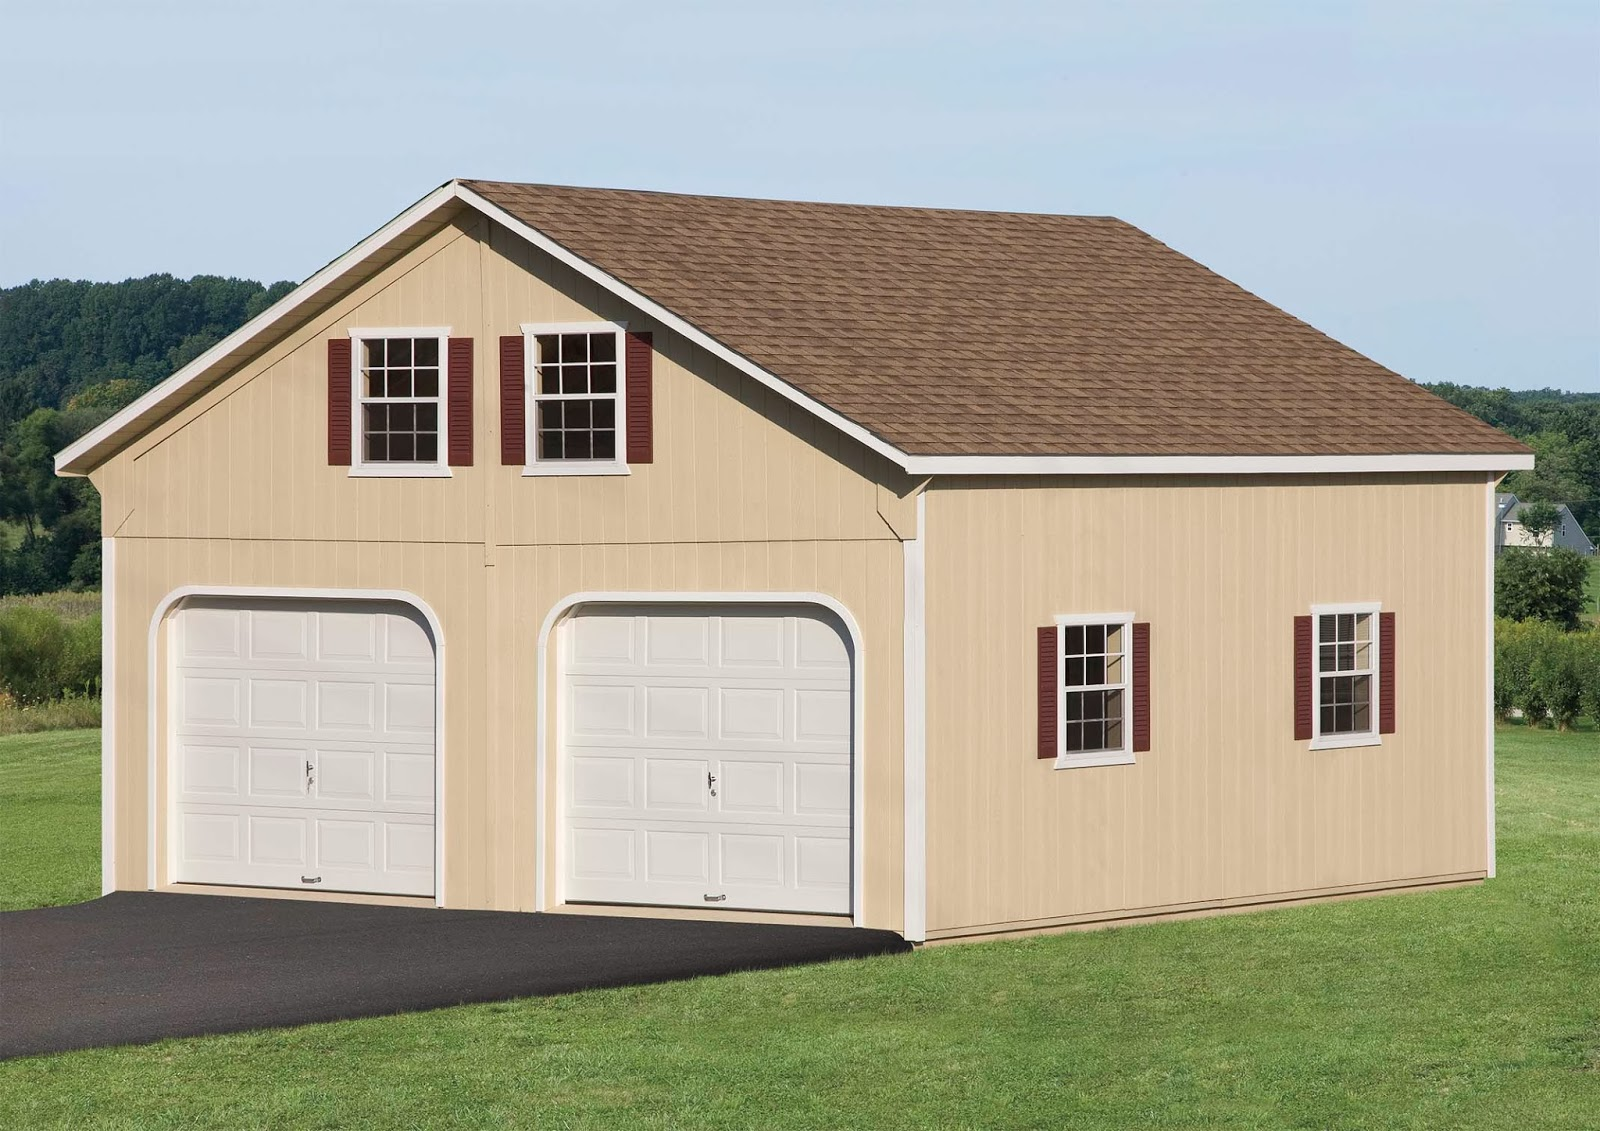 Waterloo structures storage sheds double wide garages for How wide is a garage